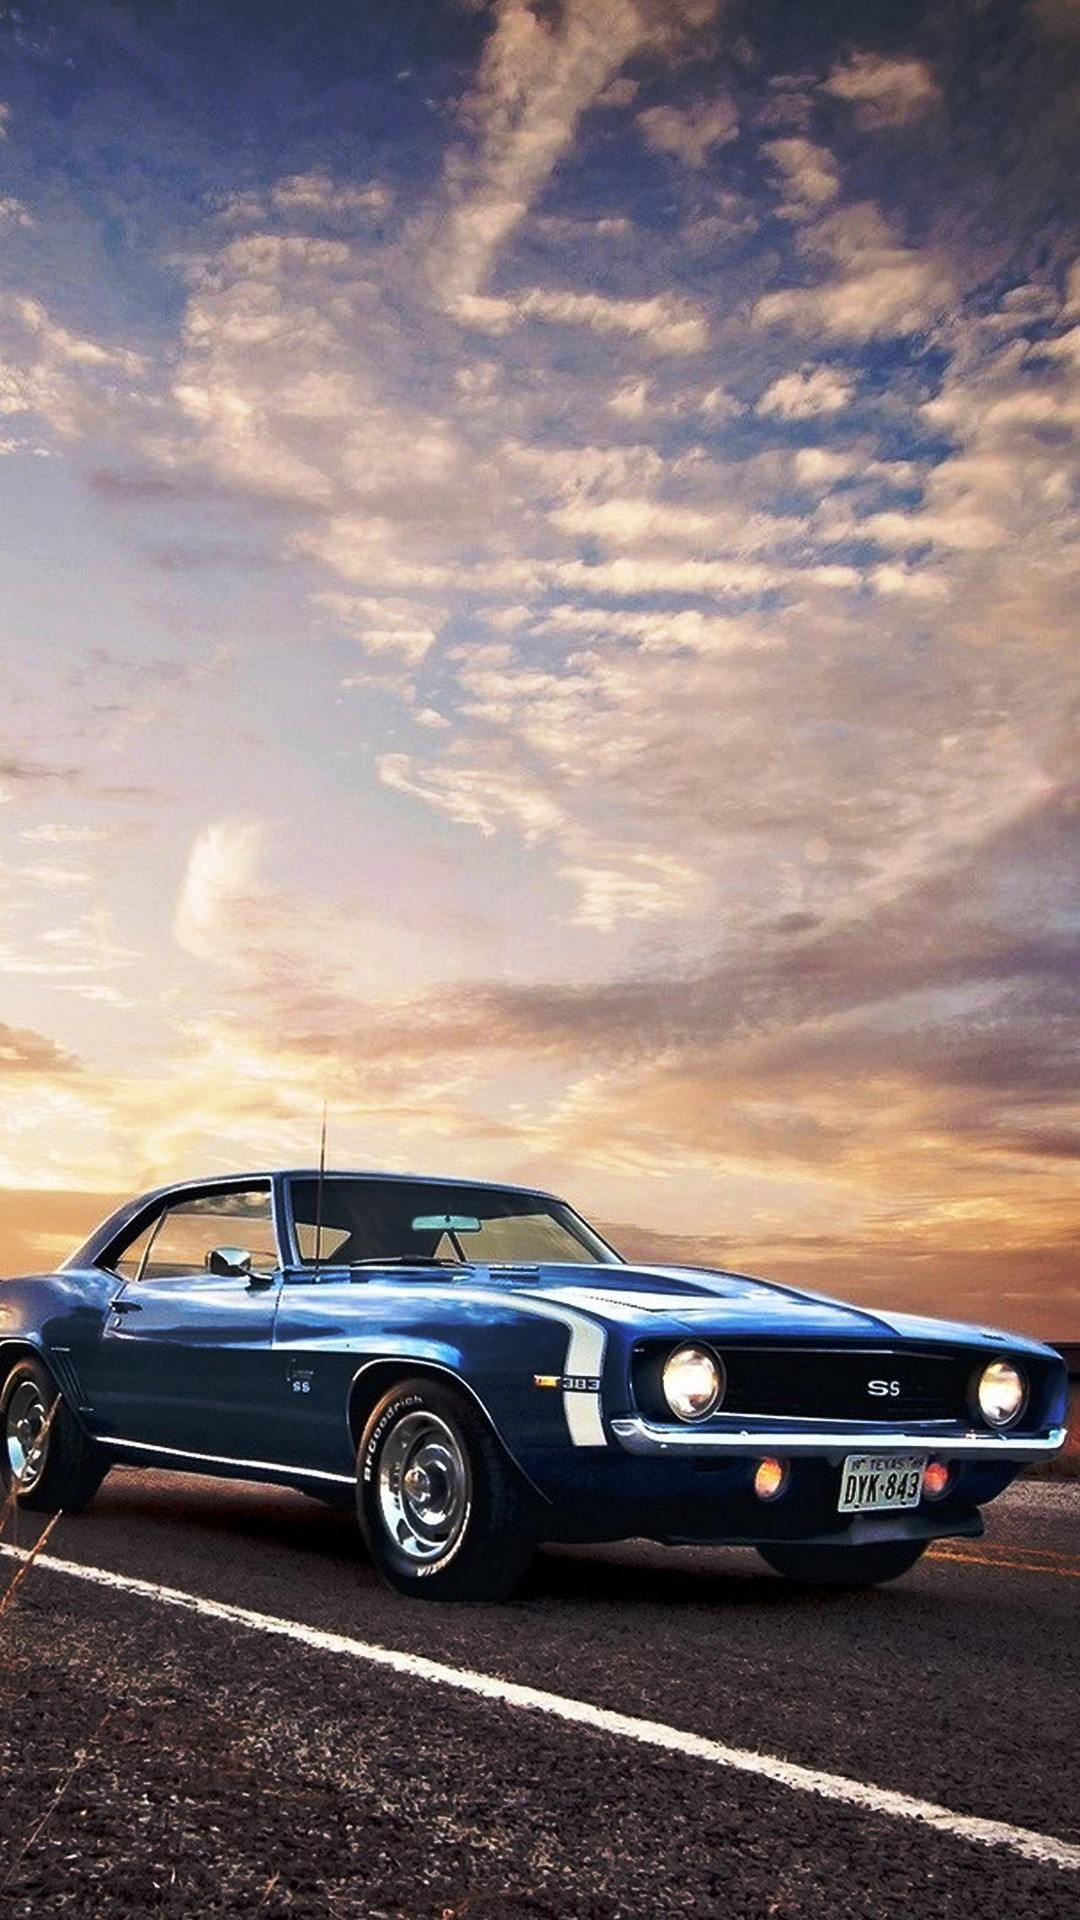 Our editors independently research, test, and recommend the best products; Car Iphone 6 Wallpaper 2021 3d Iphone Wallpaper